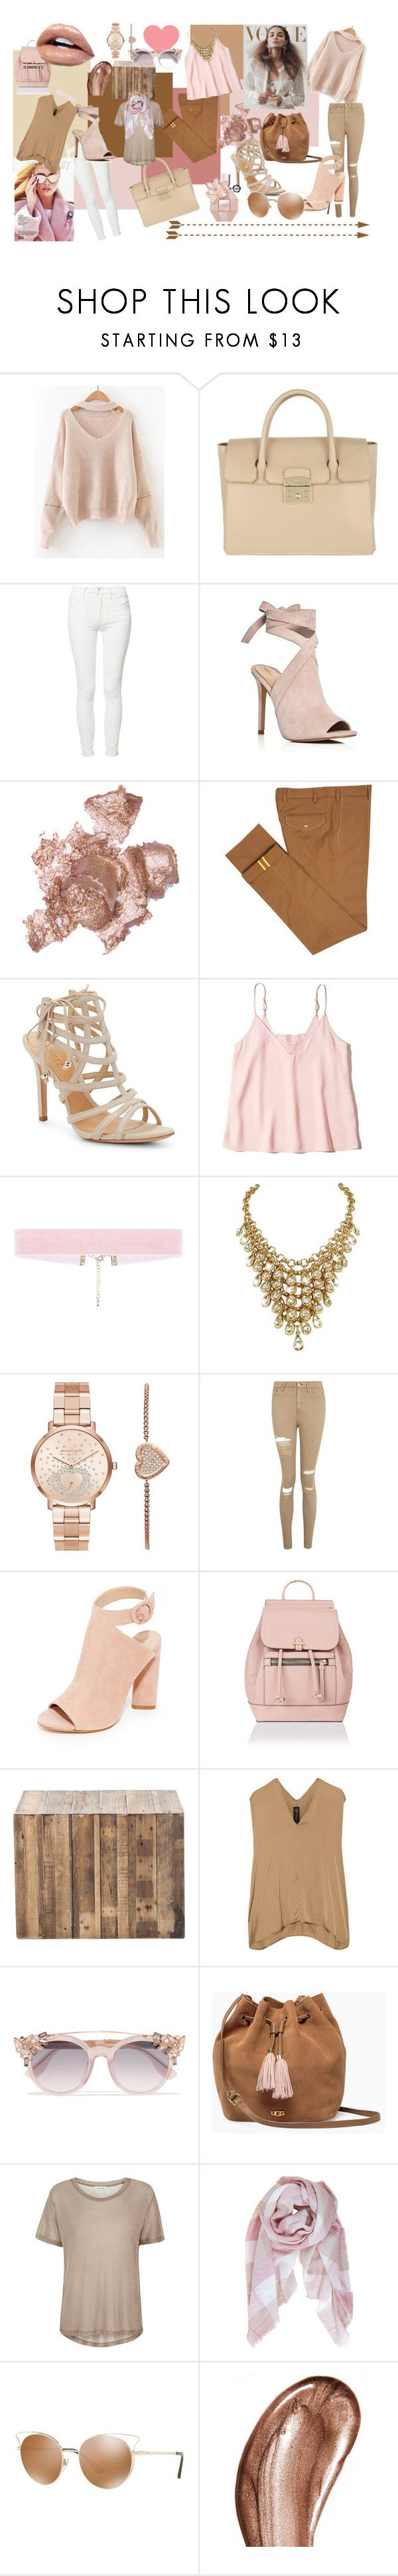 """mood board"" by delaneyeyanson ❤ liked on Polyvore featuring Furla, Mother, Kendall + Kylie, By Terry, Diverso, Schutz, Hollister Co., Michael Kors, Topshop and Accessorize"